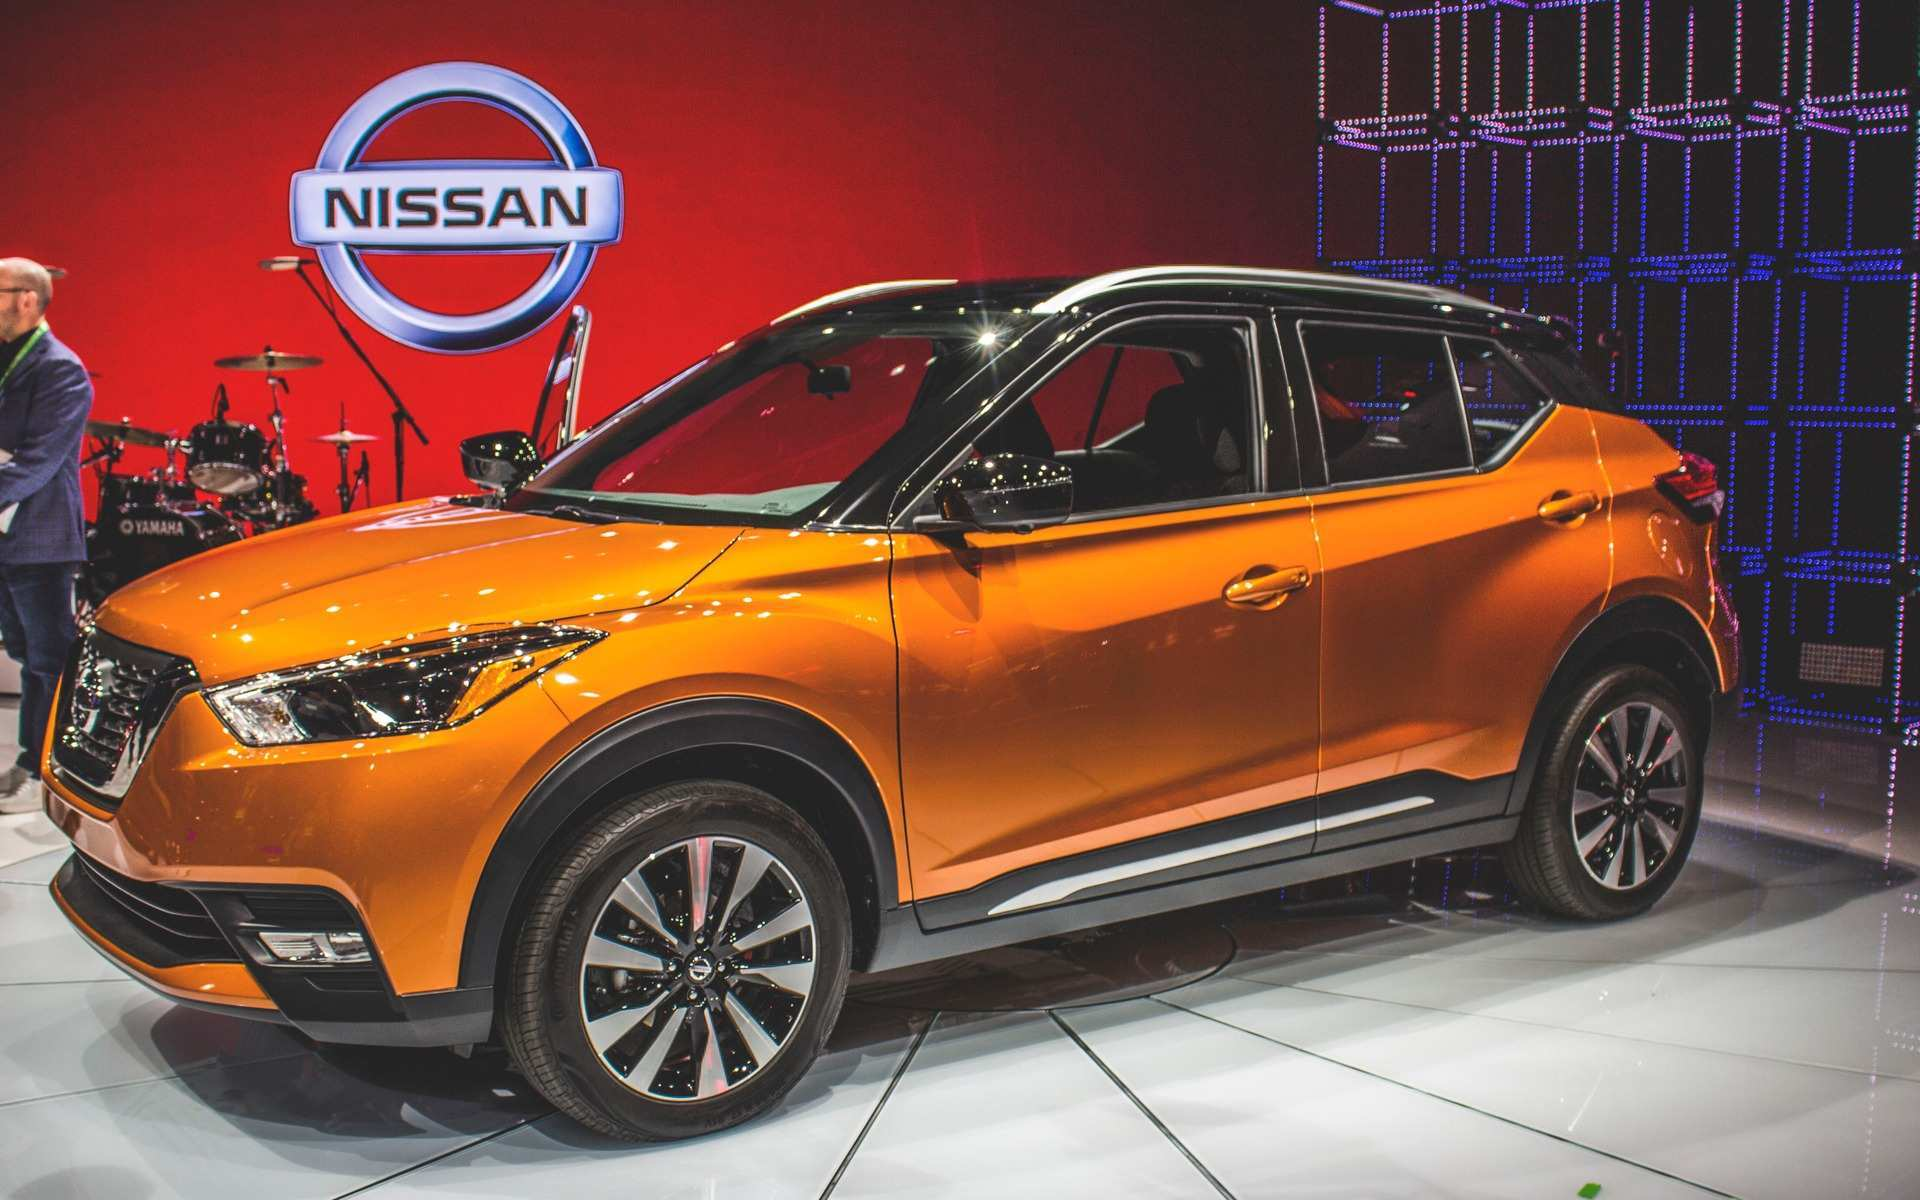 32 Best Review Nissan Kicks 2020 Interior Engine for Nissan Kicks 2020 Interior